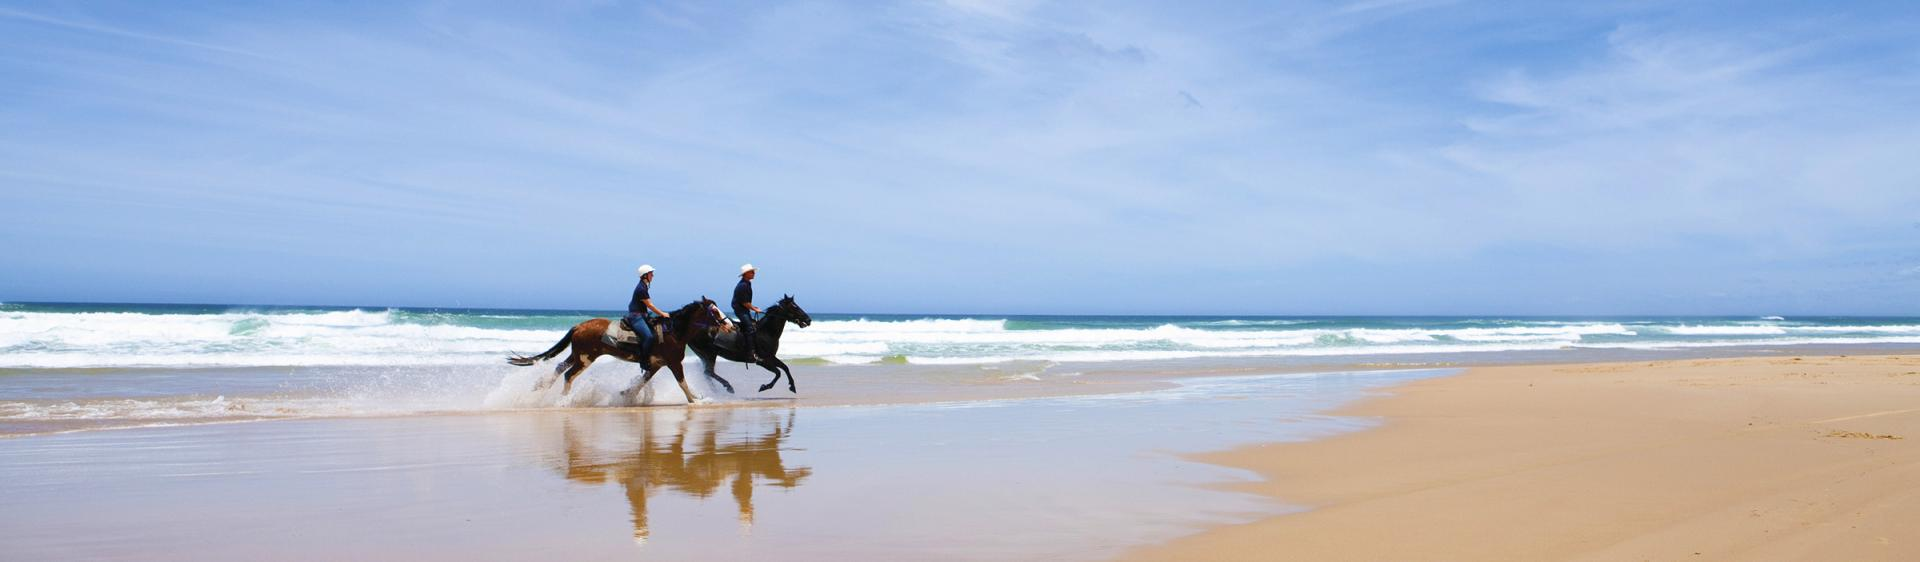 Beach Horse Riding, Port Stephens